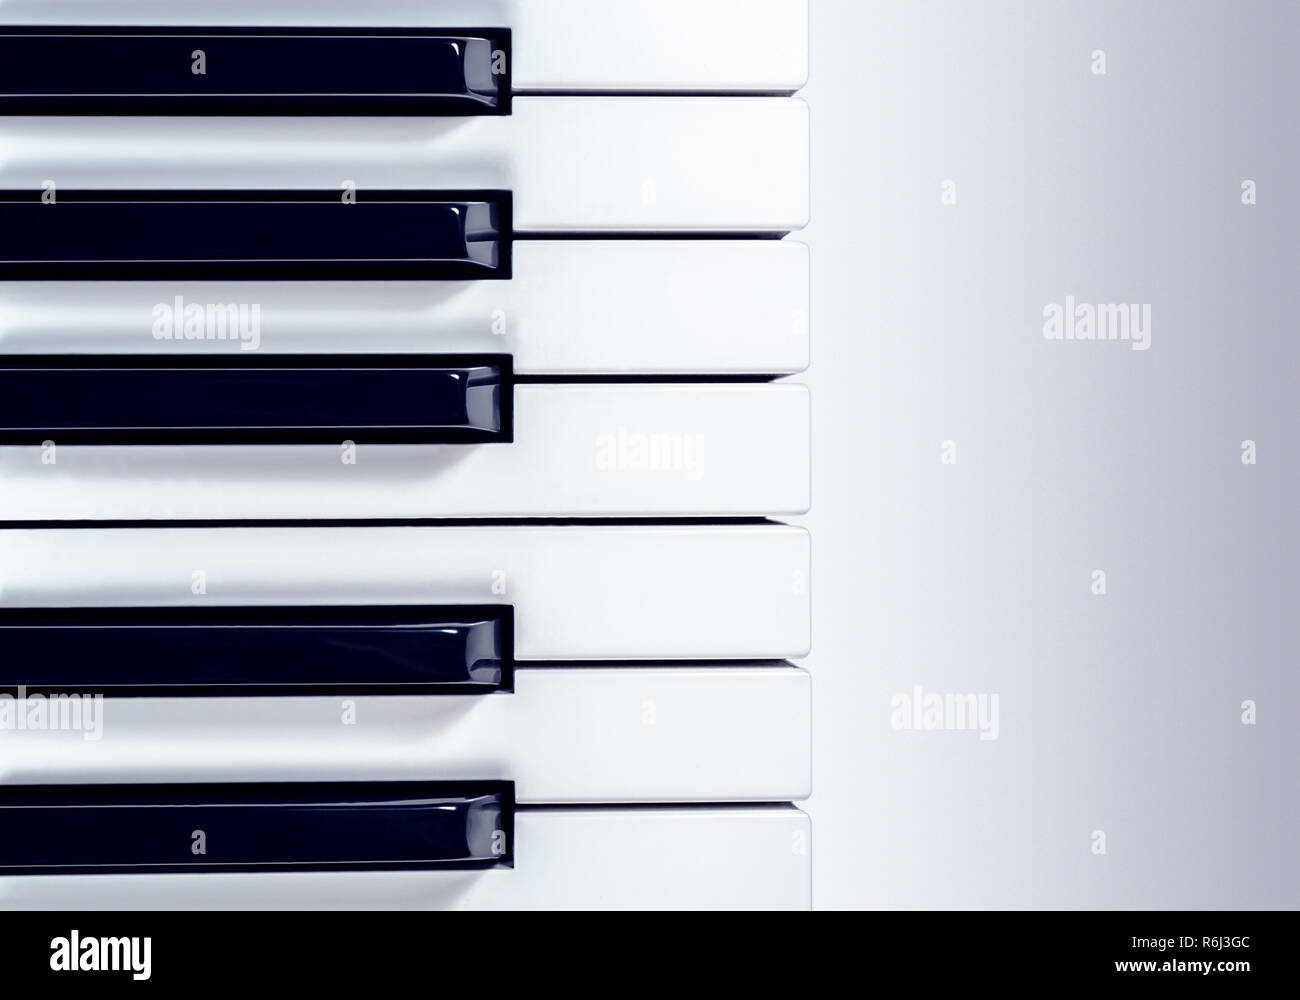 synthesizer keyboard isolated on a gradient gray background - Stock Image